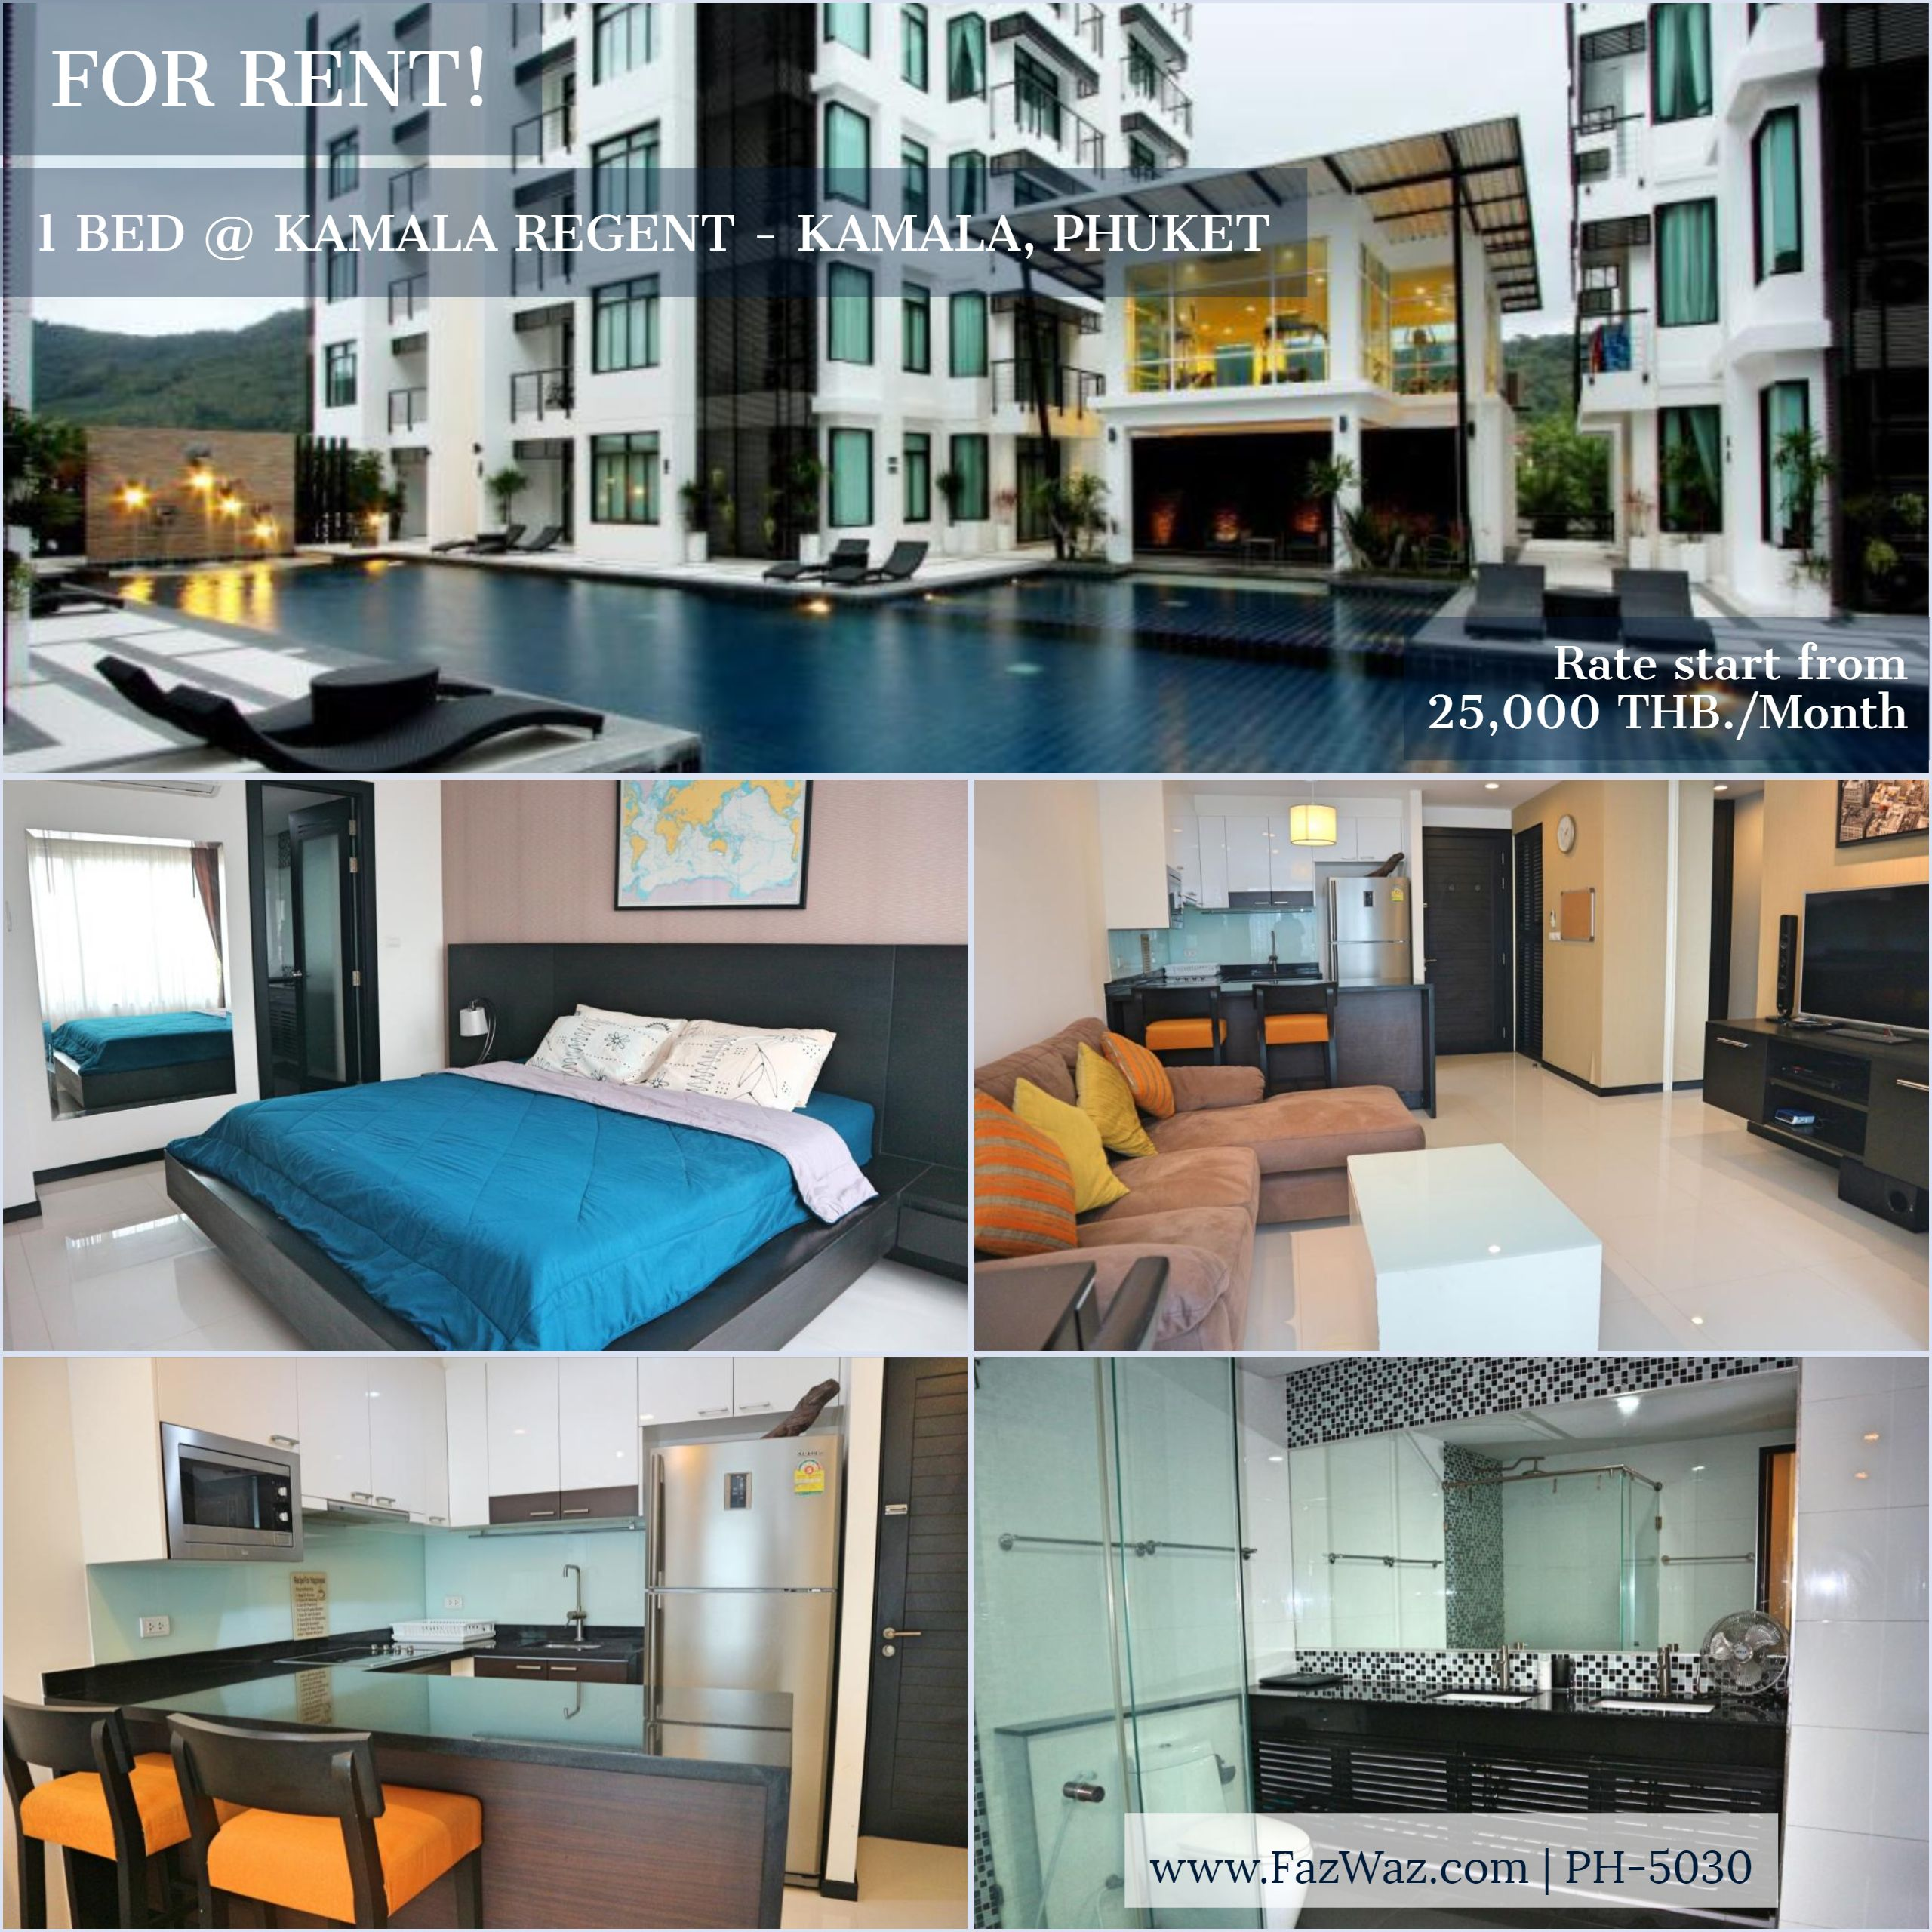 1 Bedroom Modern Apartment For Rent. #modernapartment